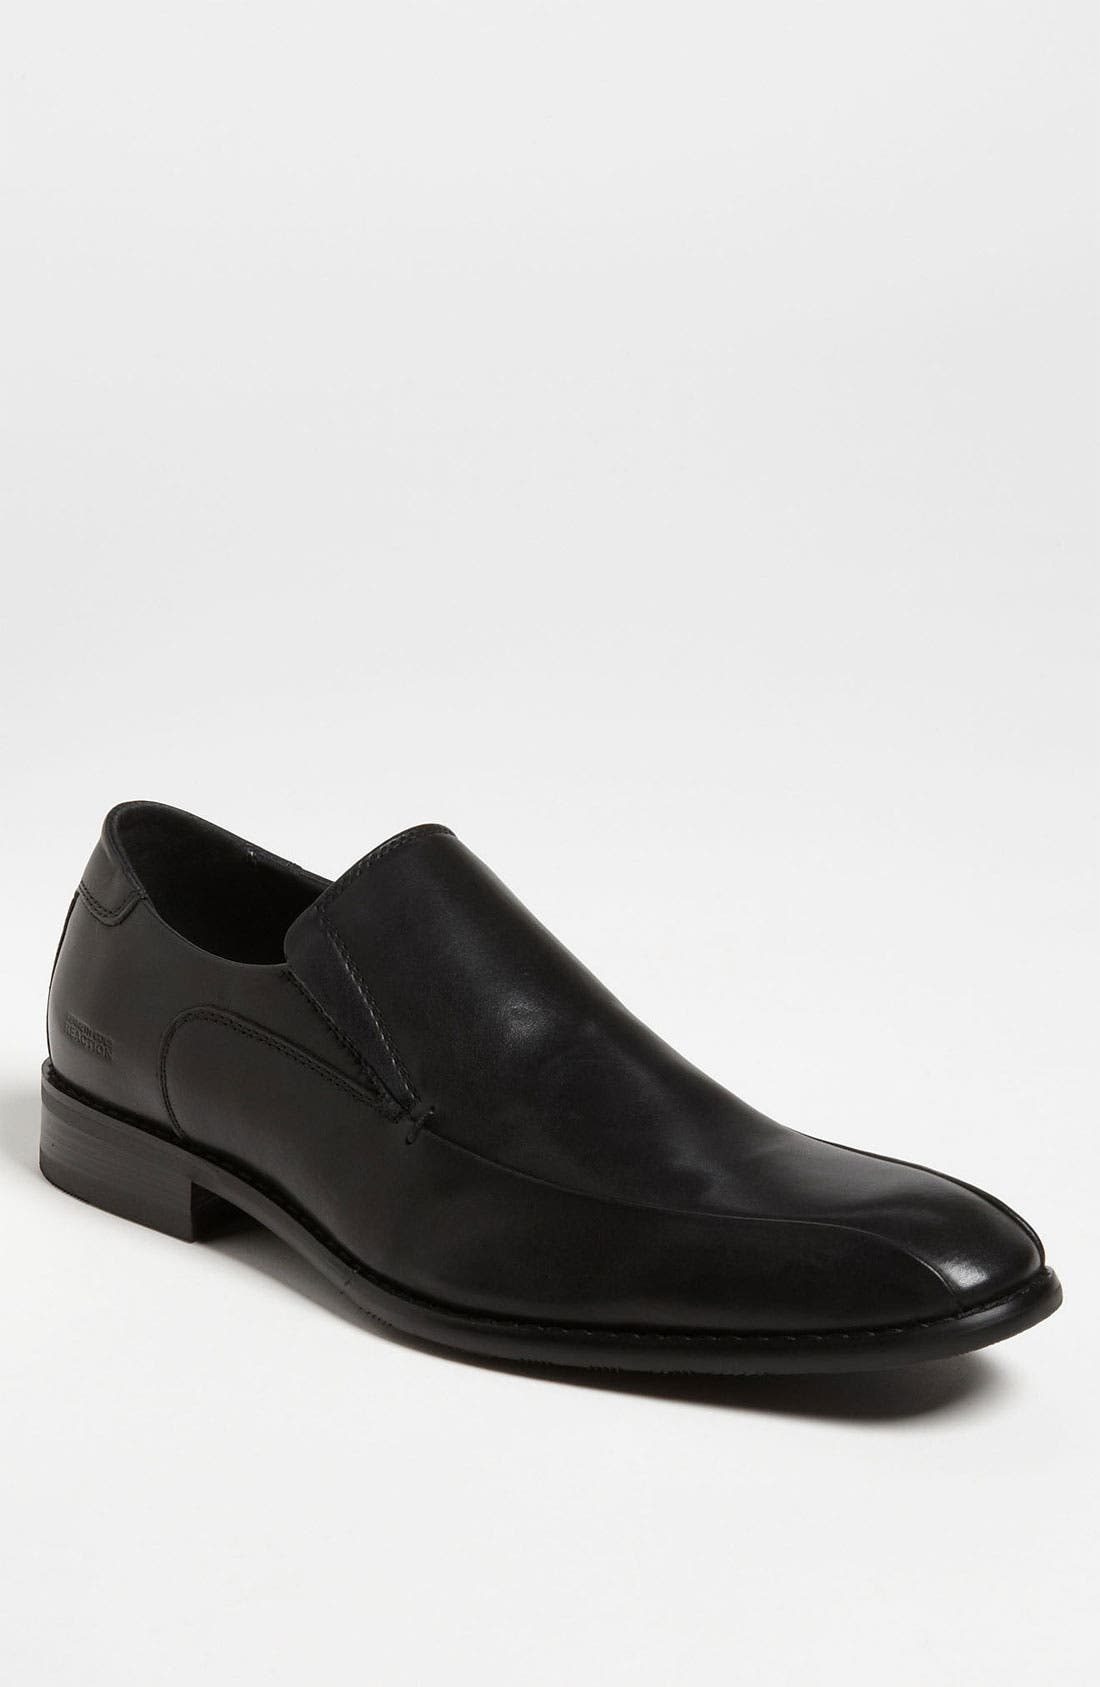 Main Image - Kenneth Cole Reaction 'In Focus' Venetian Loafer (Online Exclusive)